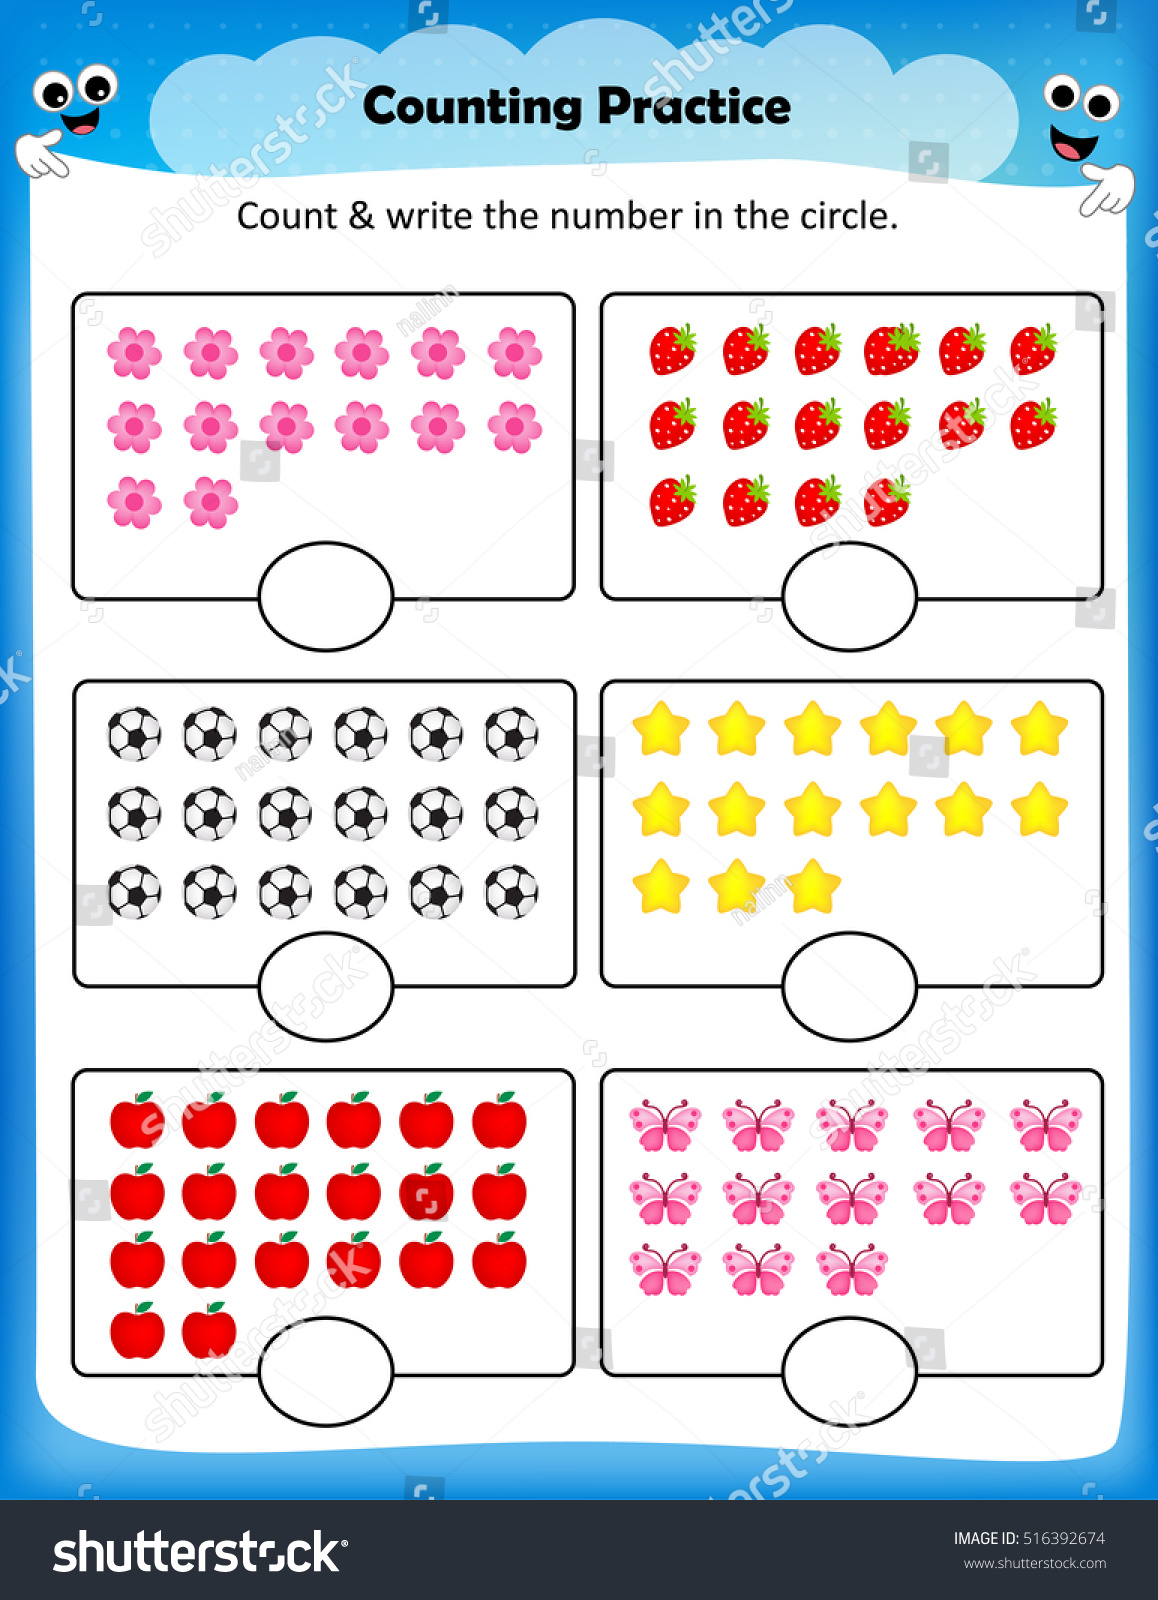 Counting Practice Worksheet Toddler